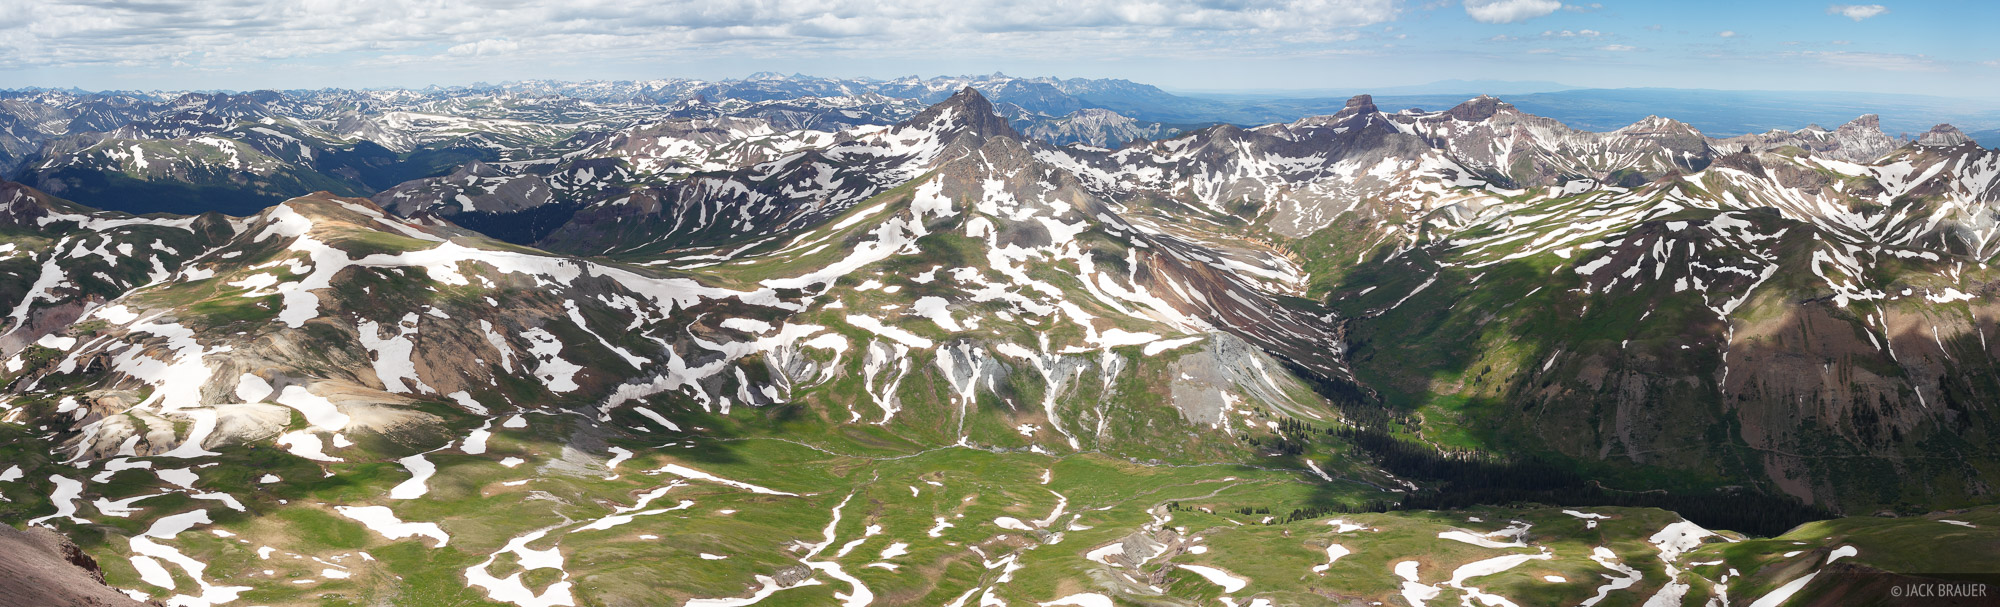 Uncompahgre Peak, summit, panorama, San Juan Mountains, Colorado, Wetterhorn Peak, photo